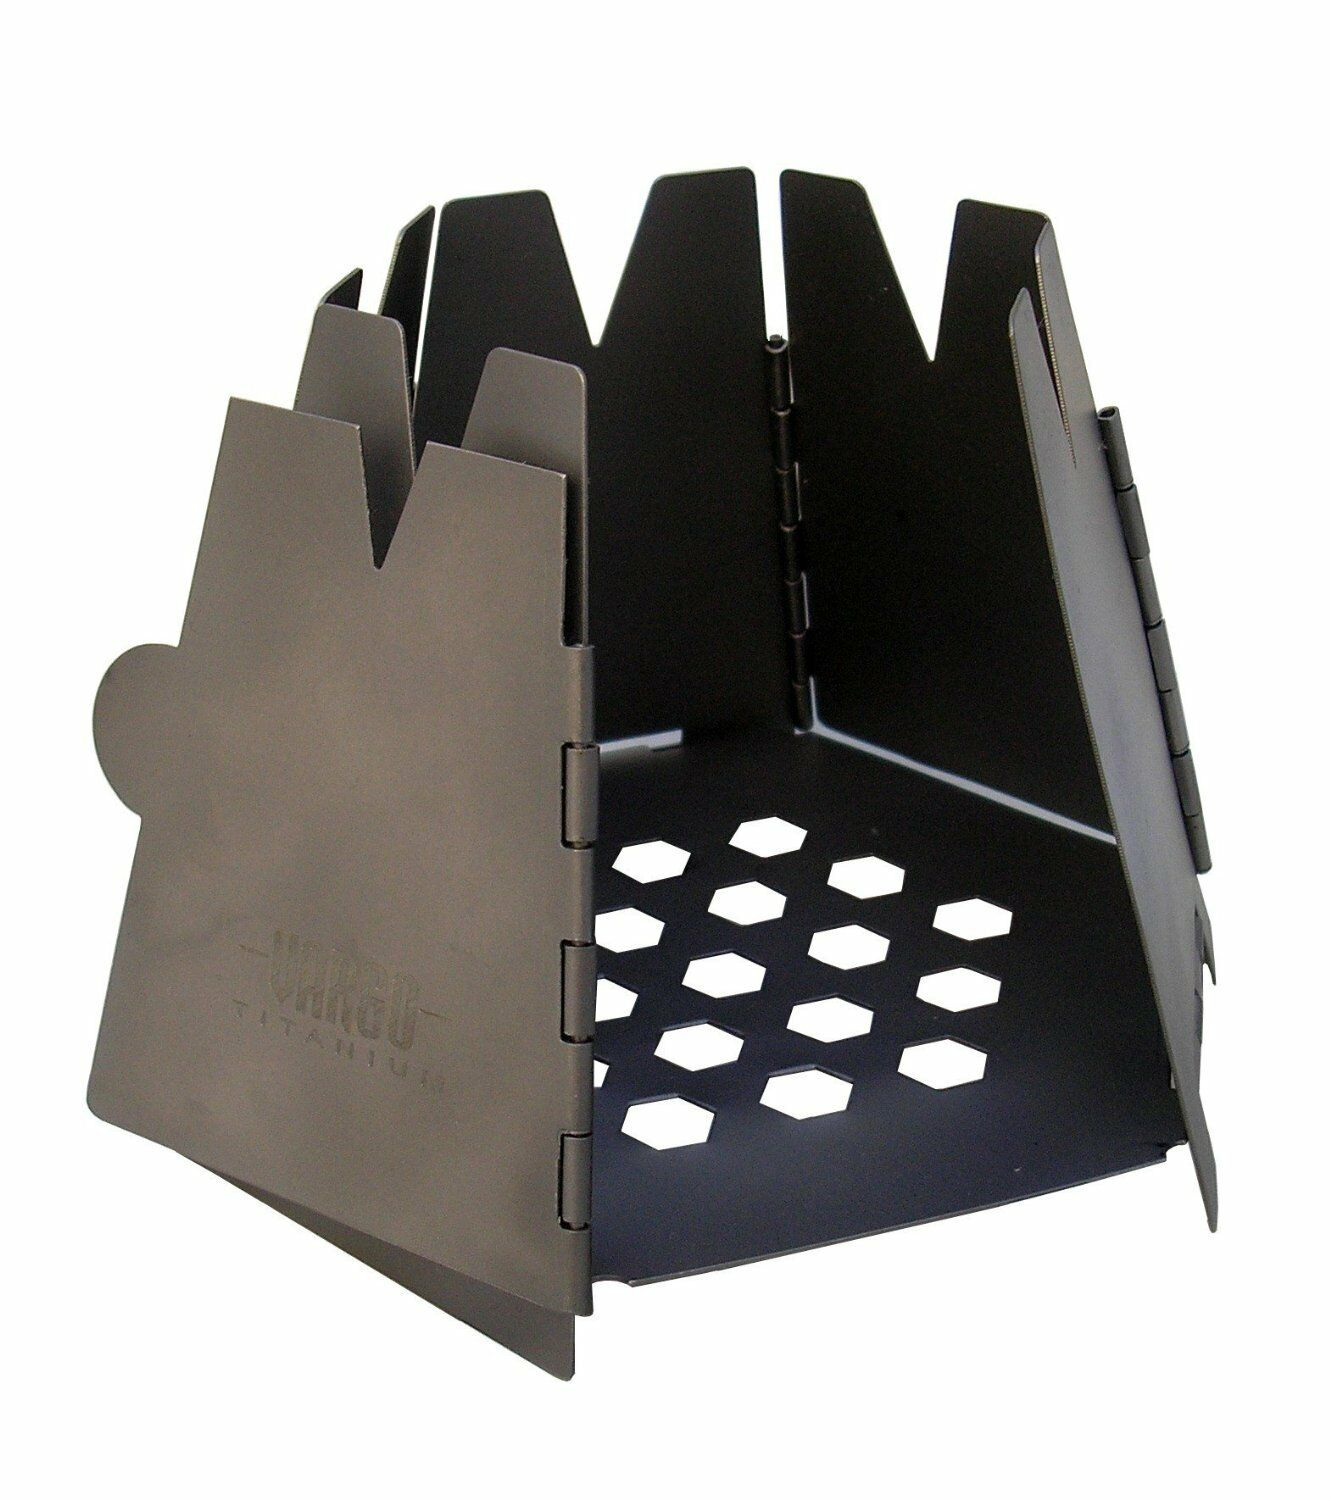 VARGO Japan Titanium Hexagon Wood Stove Stand